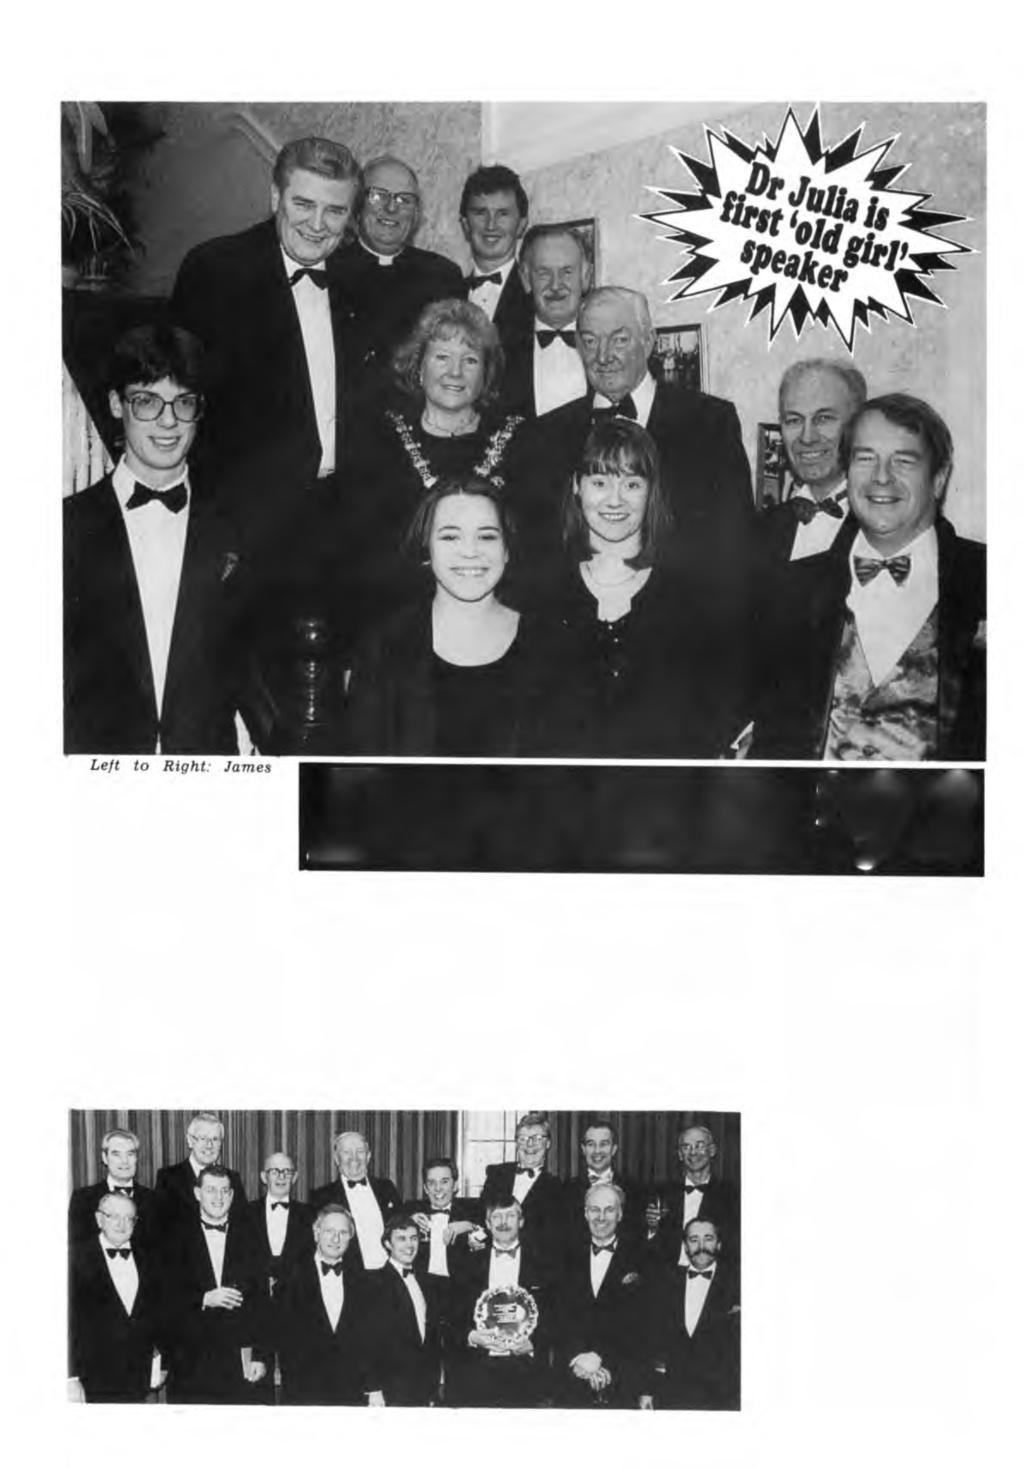 SPRING 1993 MAGISTER - PAGE 11 Coleman, Head Boy; Keith Gledhill, High Sheriff; The Very Reverend David Frayn, the new Provost of Blackburn; Councillor Mrs.